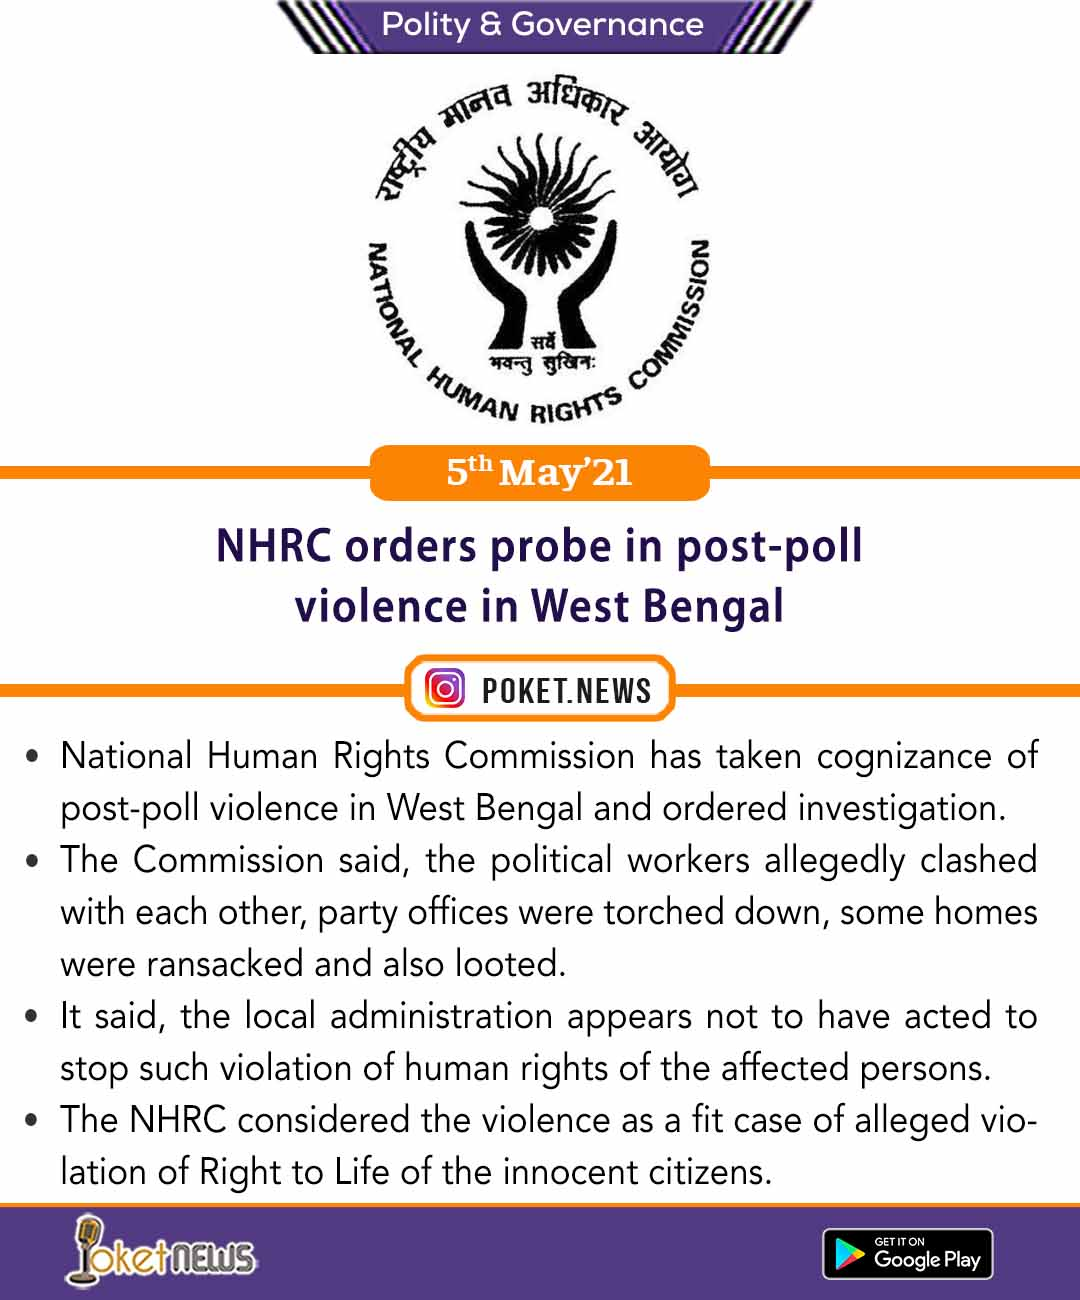 NHRC orders probe in post-poll violence in West Bengal